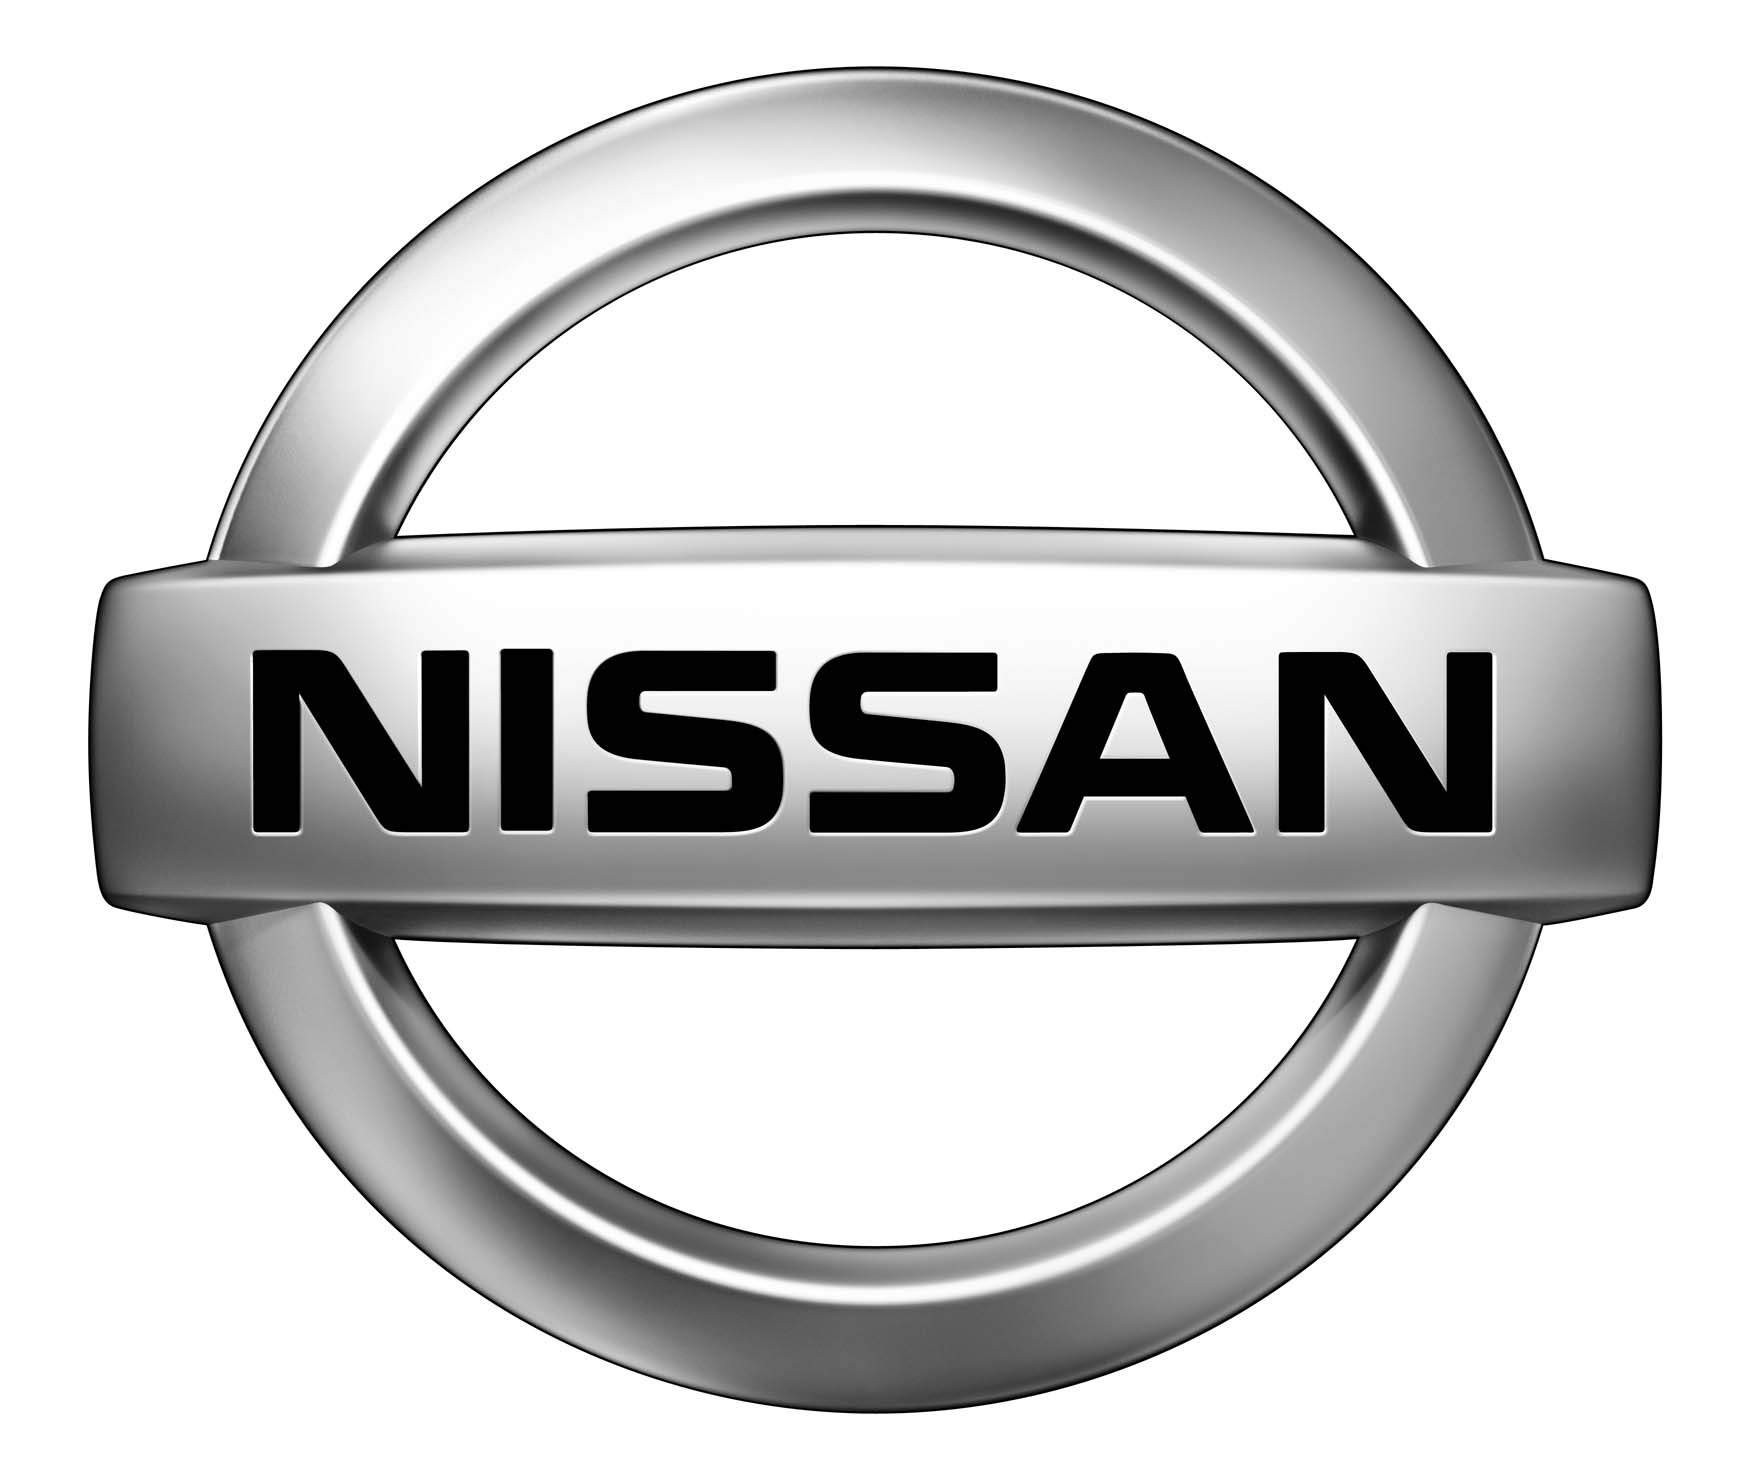 Nissan - Autopedia, the free automobile encyclopedia